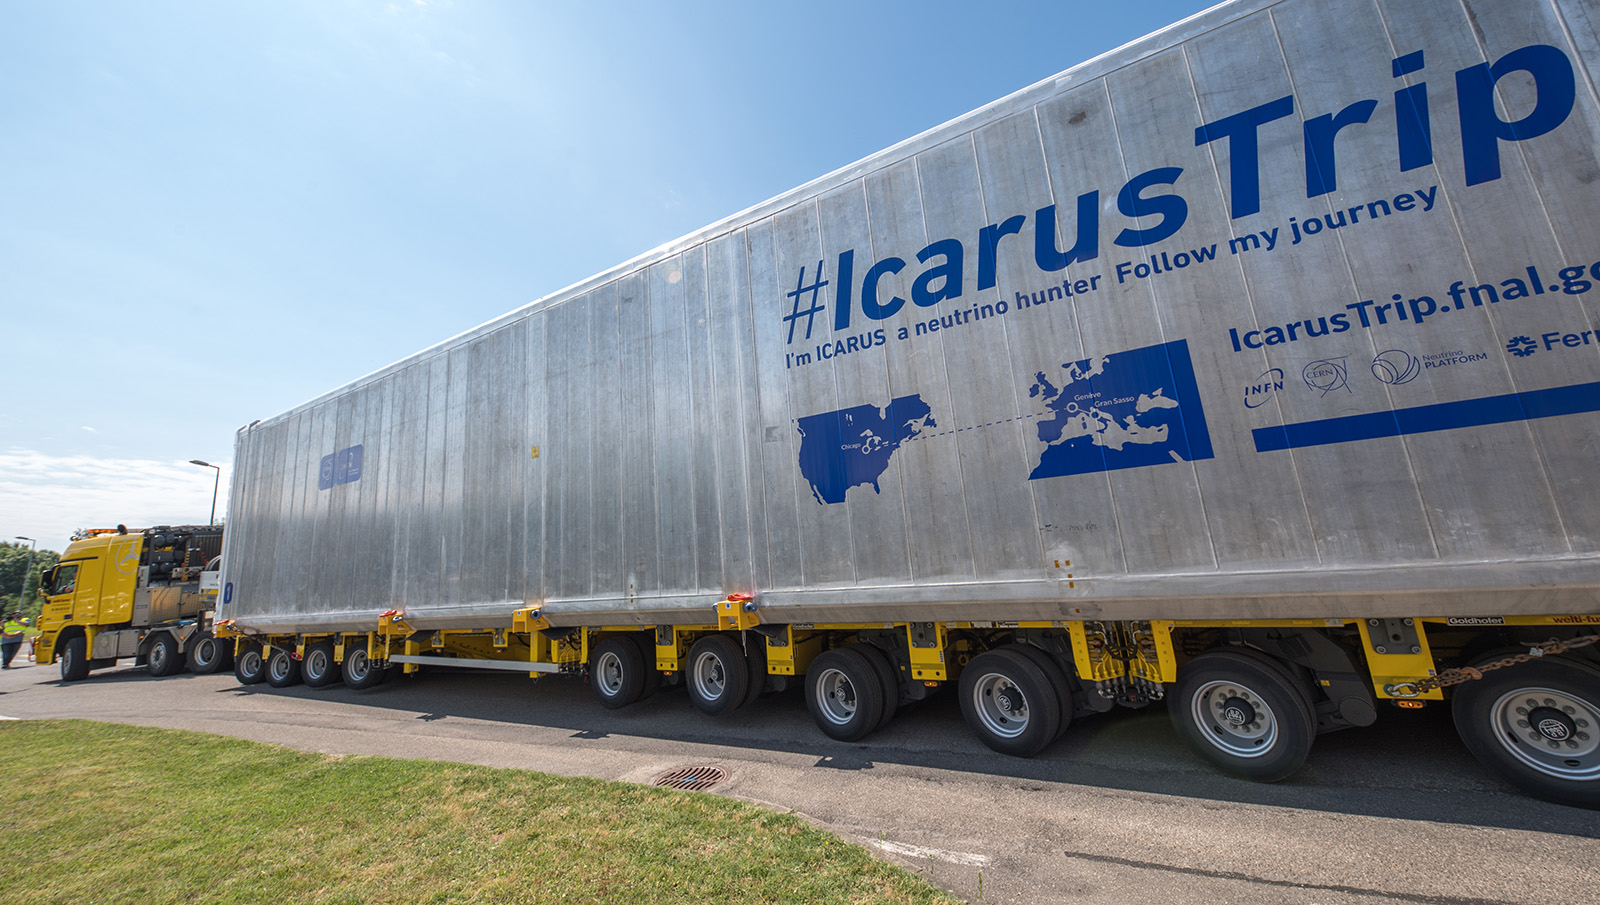 Photo of the ICARUS shipping container being transported by truck